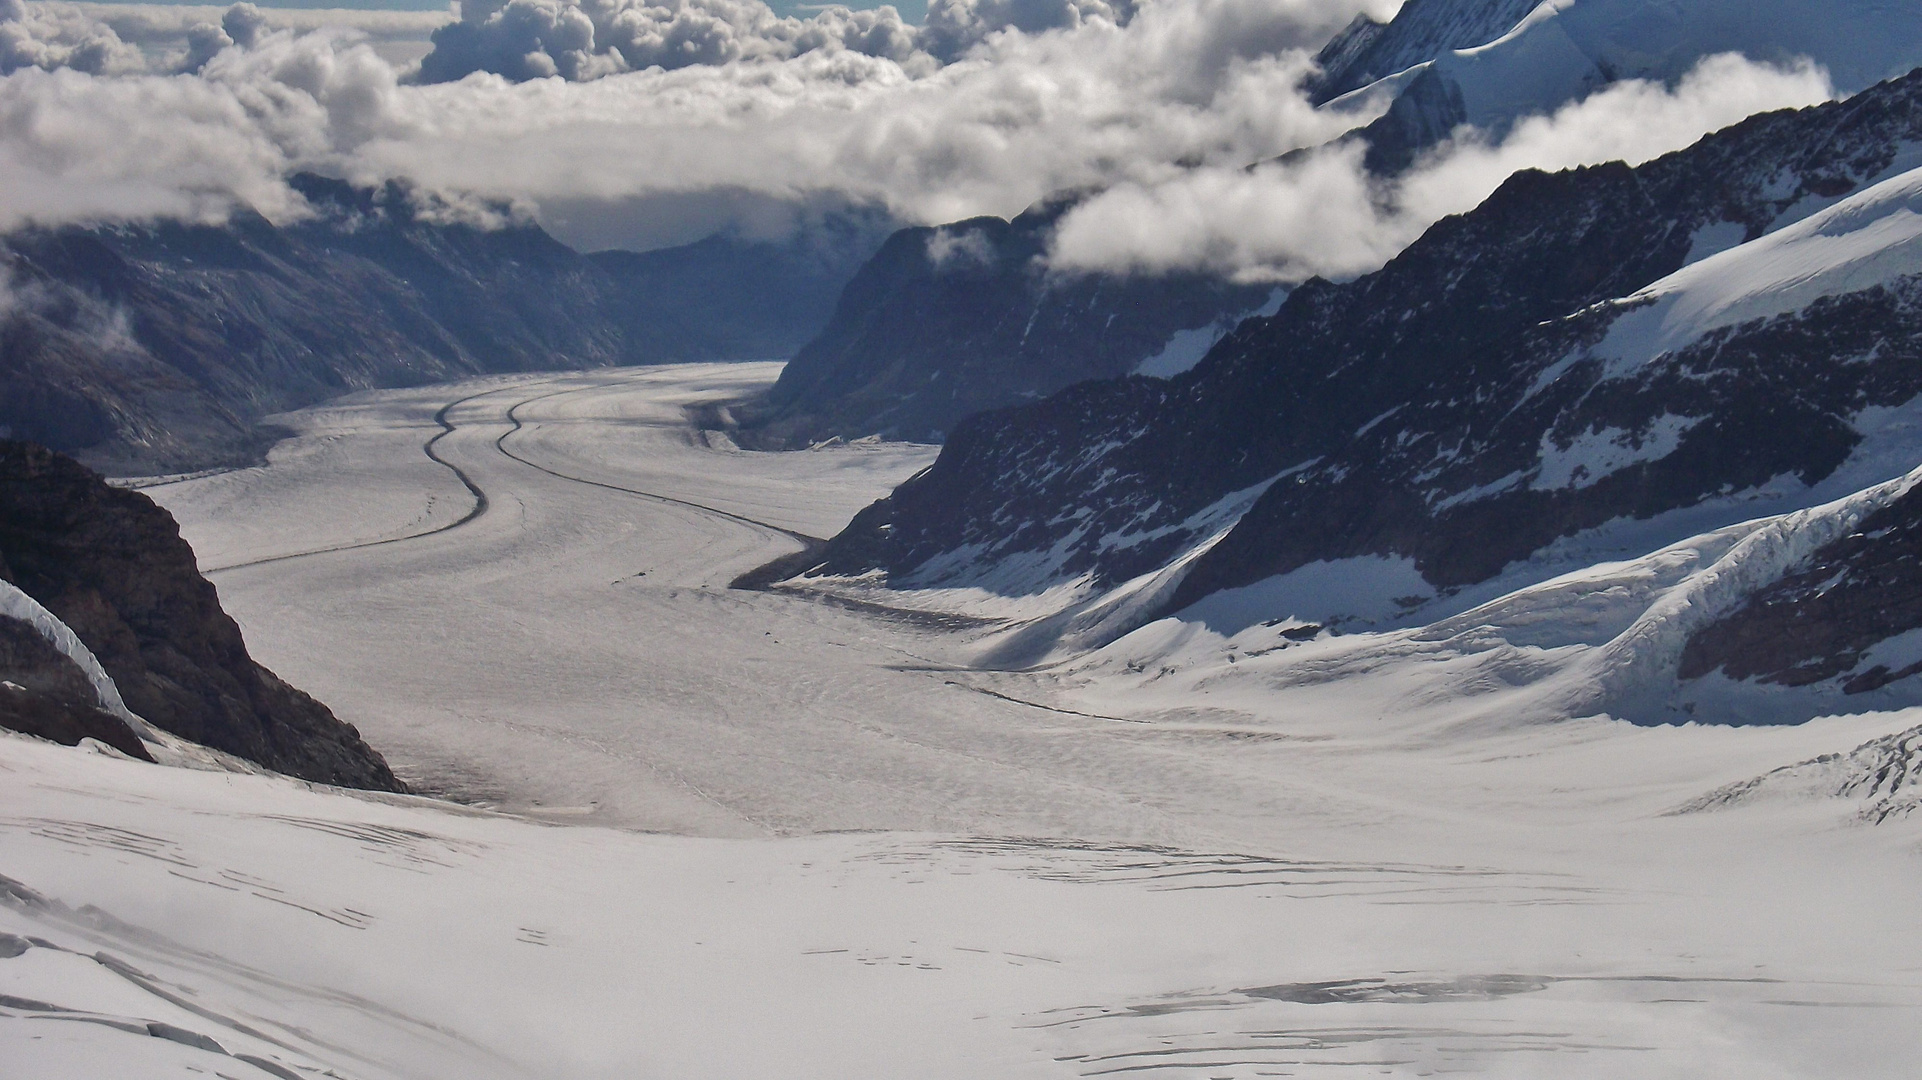 from the Top of Europe a glimpse of the Aletsch Glacier